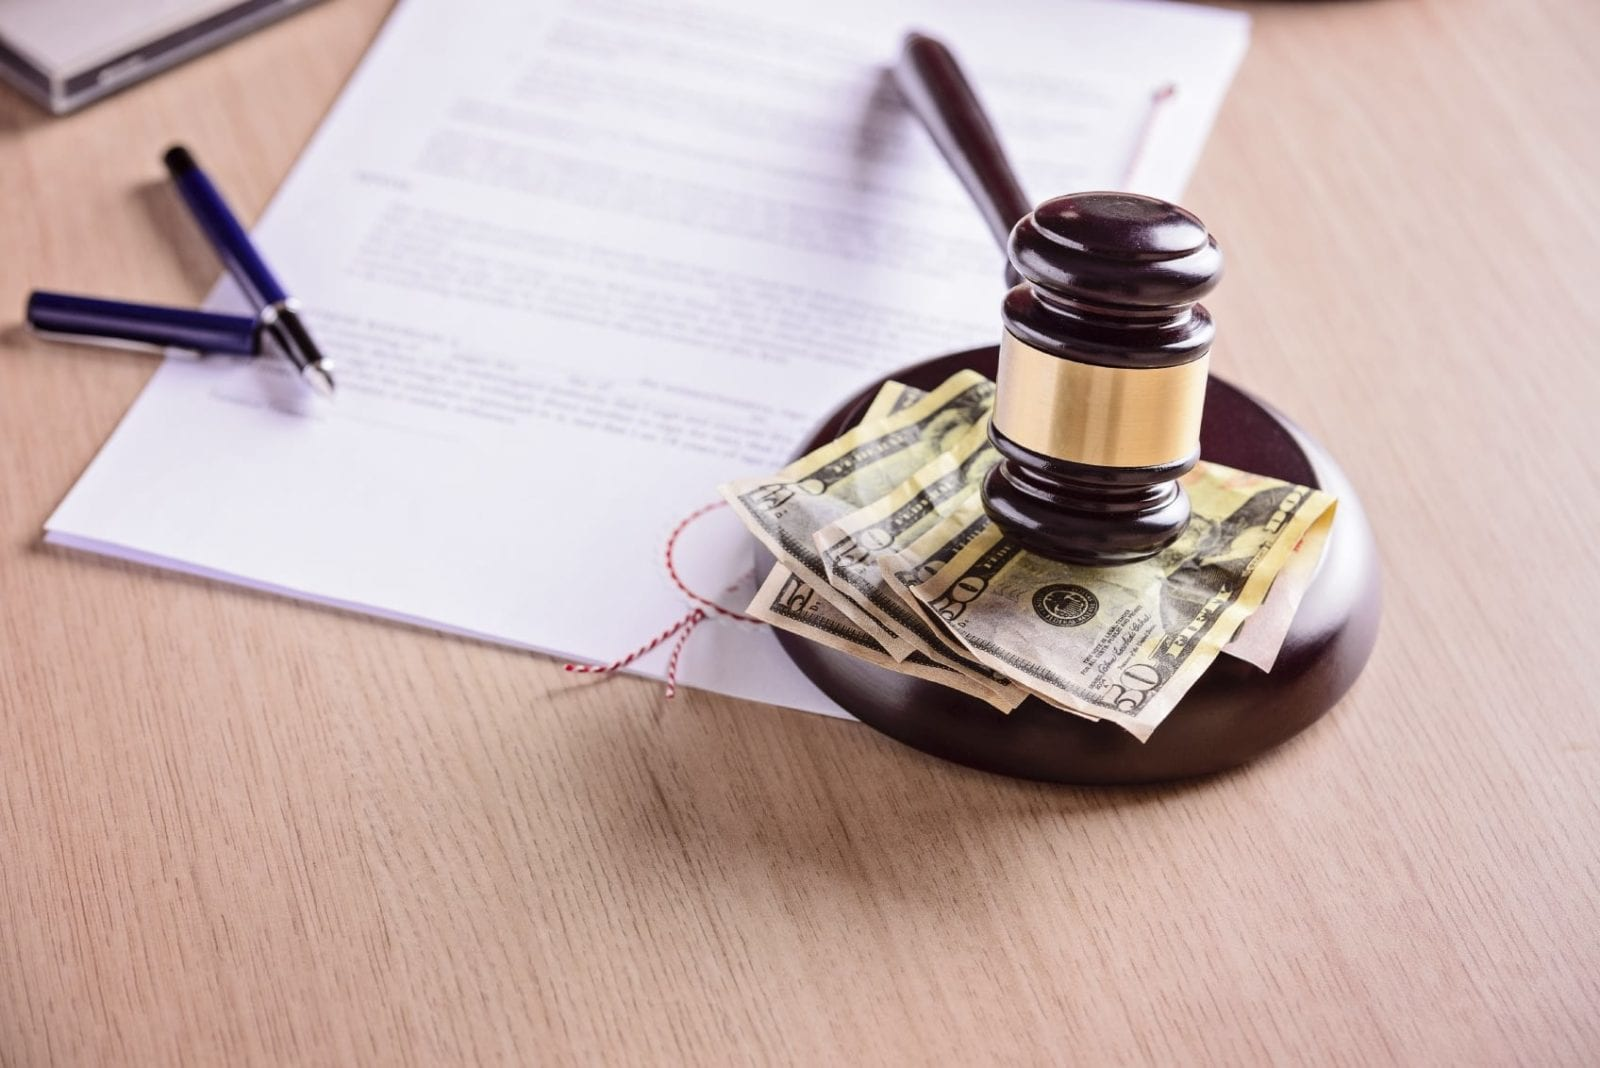 Wooden Gavel Laying On Top Of Money Stock Photo